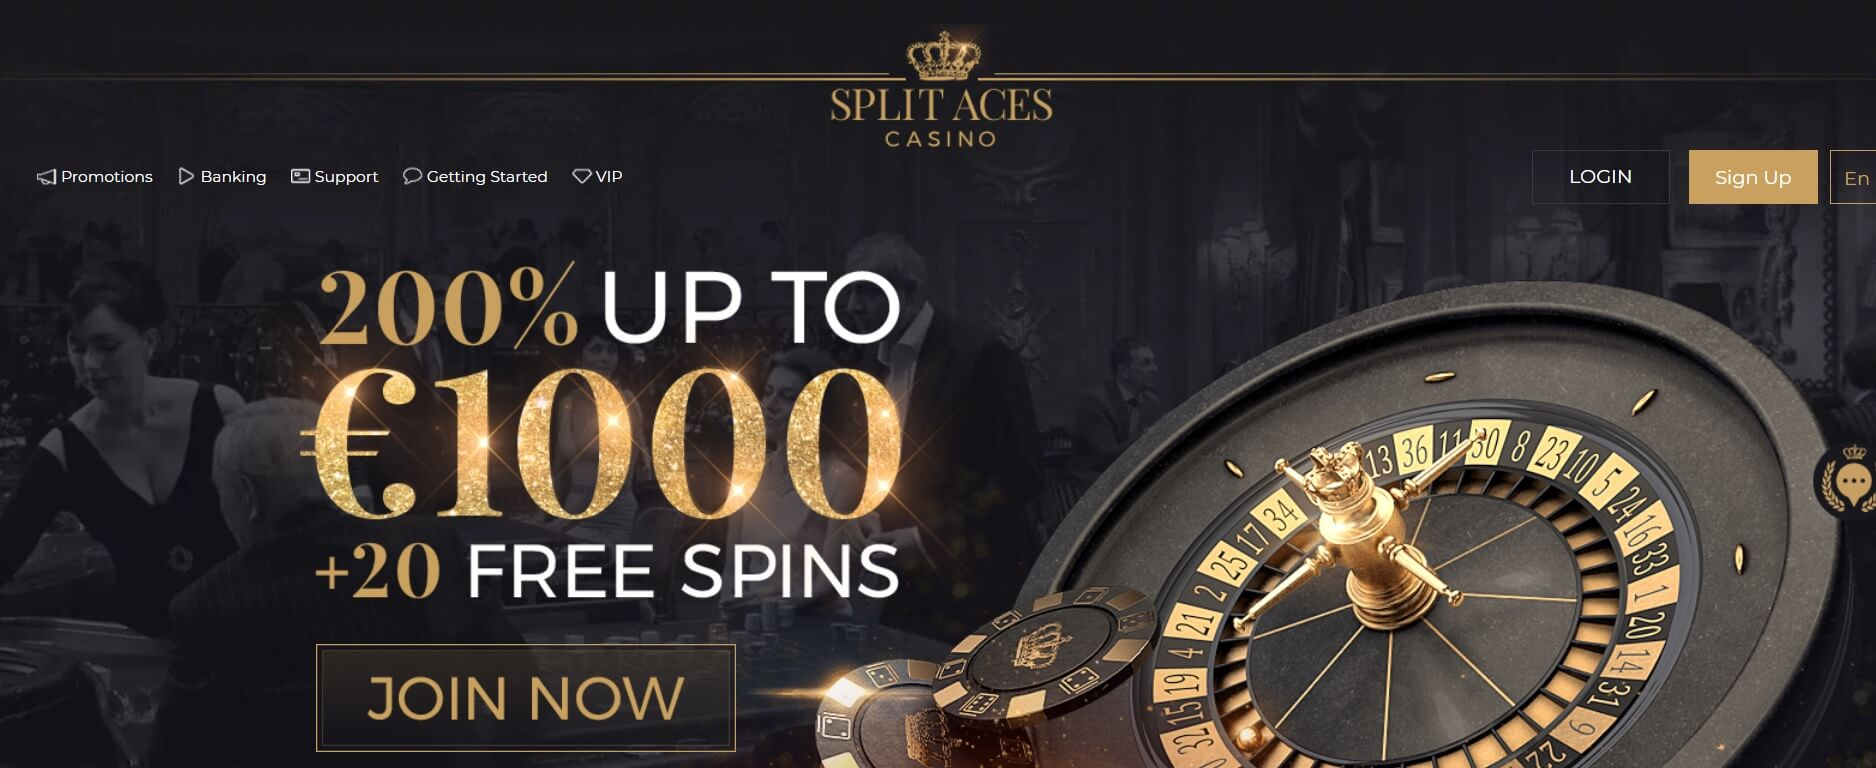 split aces new bonus